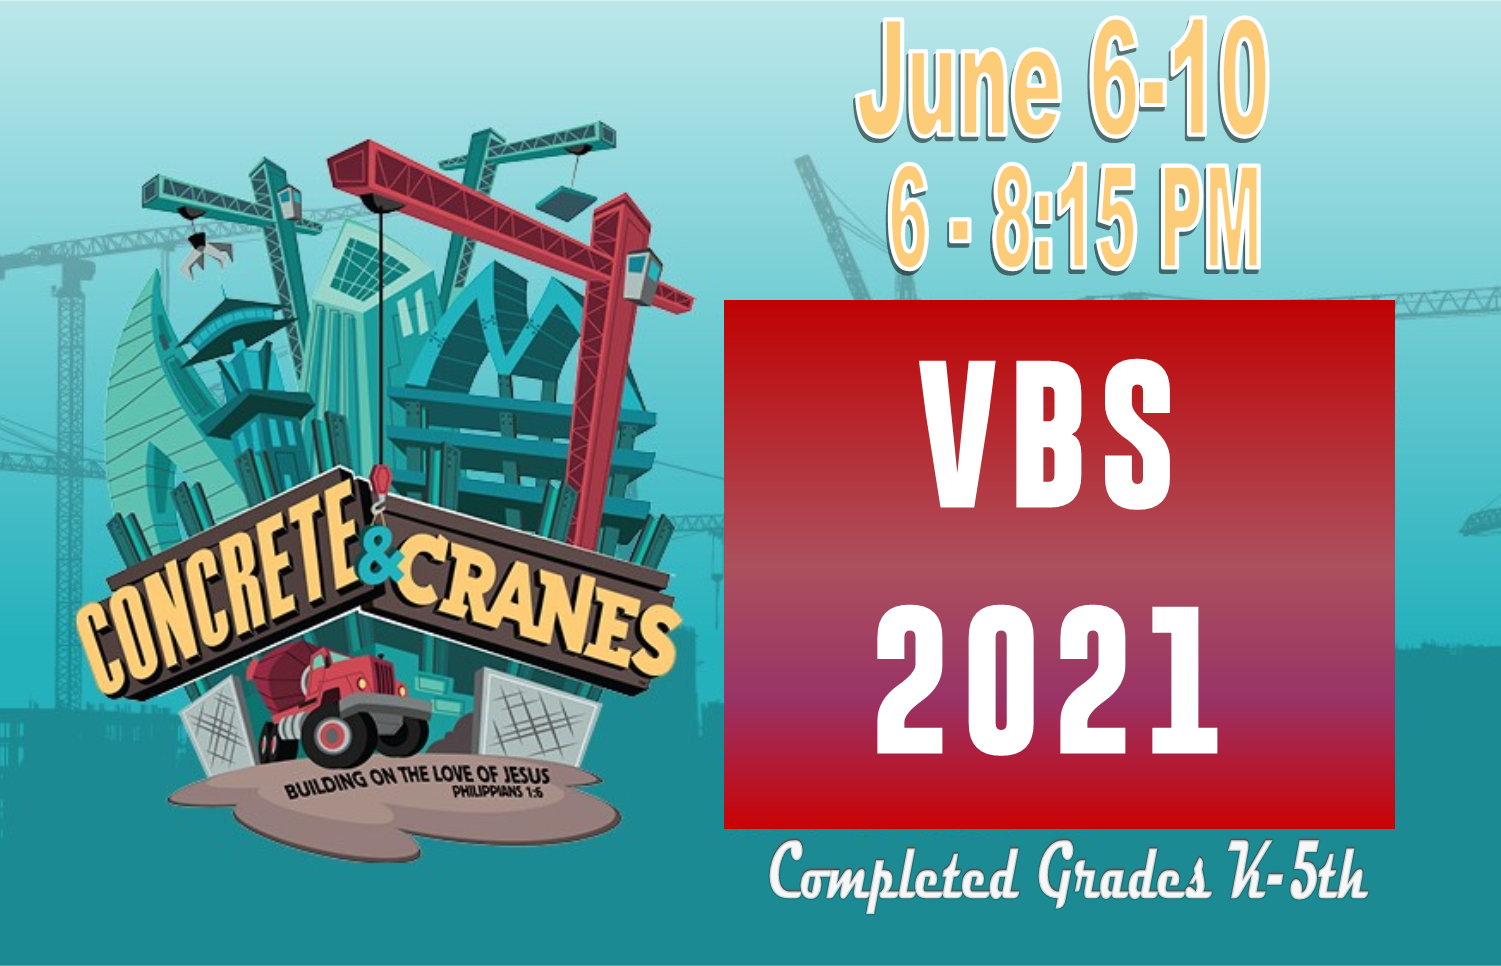 VBS 2021 Page Date Time